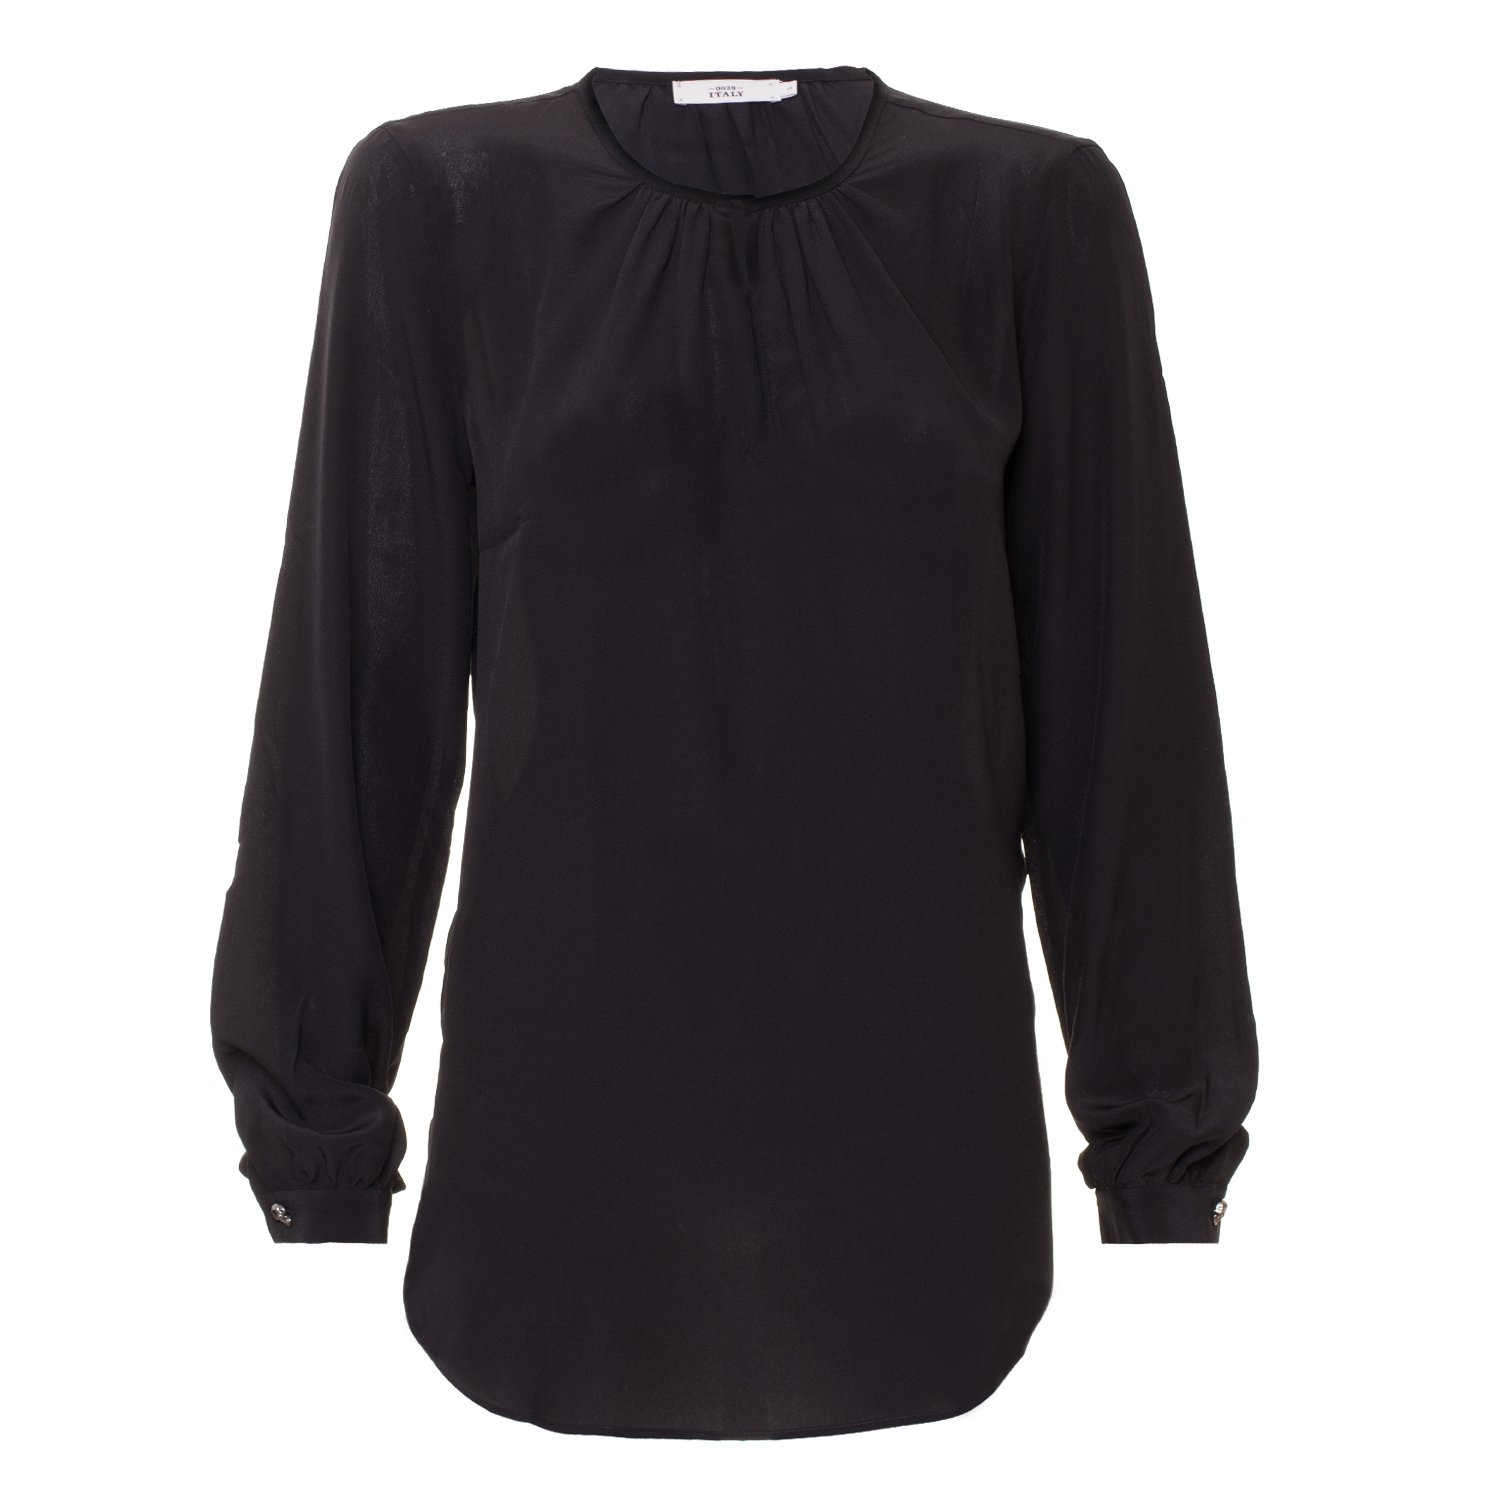 """'Blouse """"Francis?-?0039ITALY?-?Color: Black"""